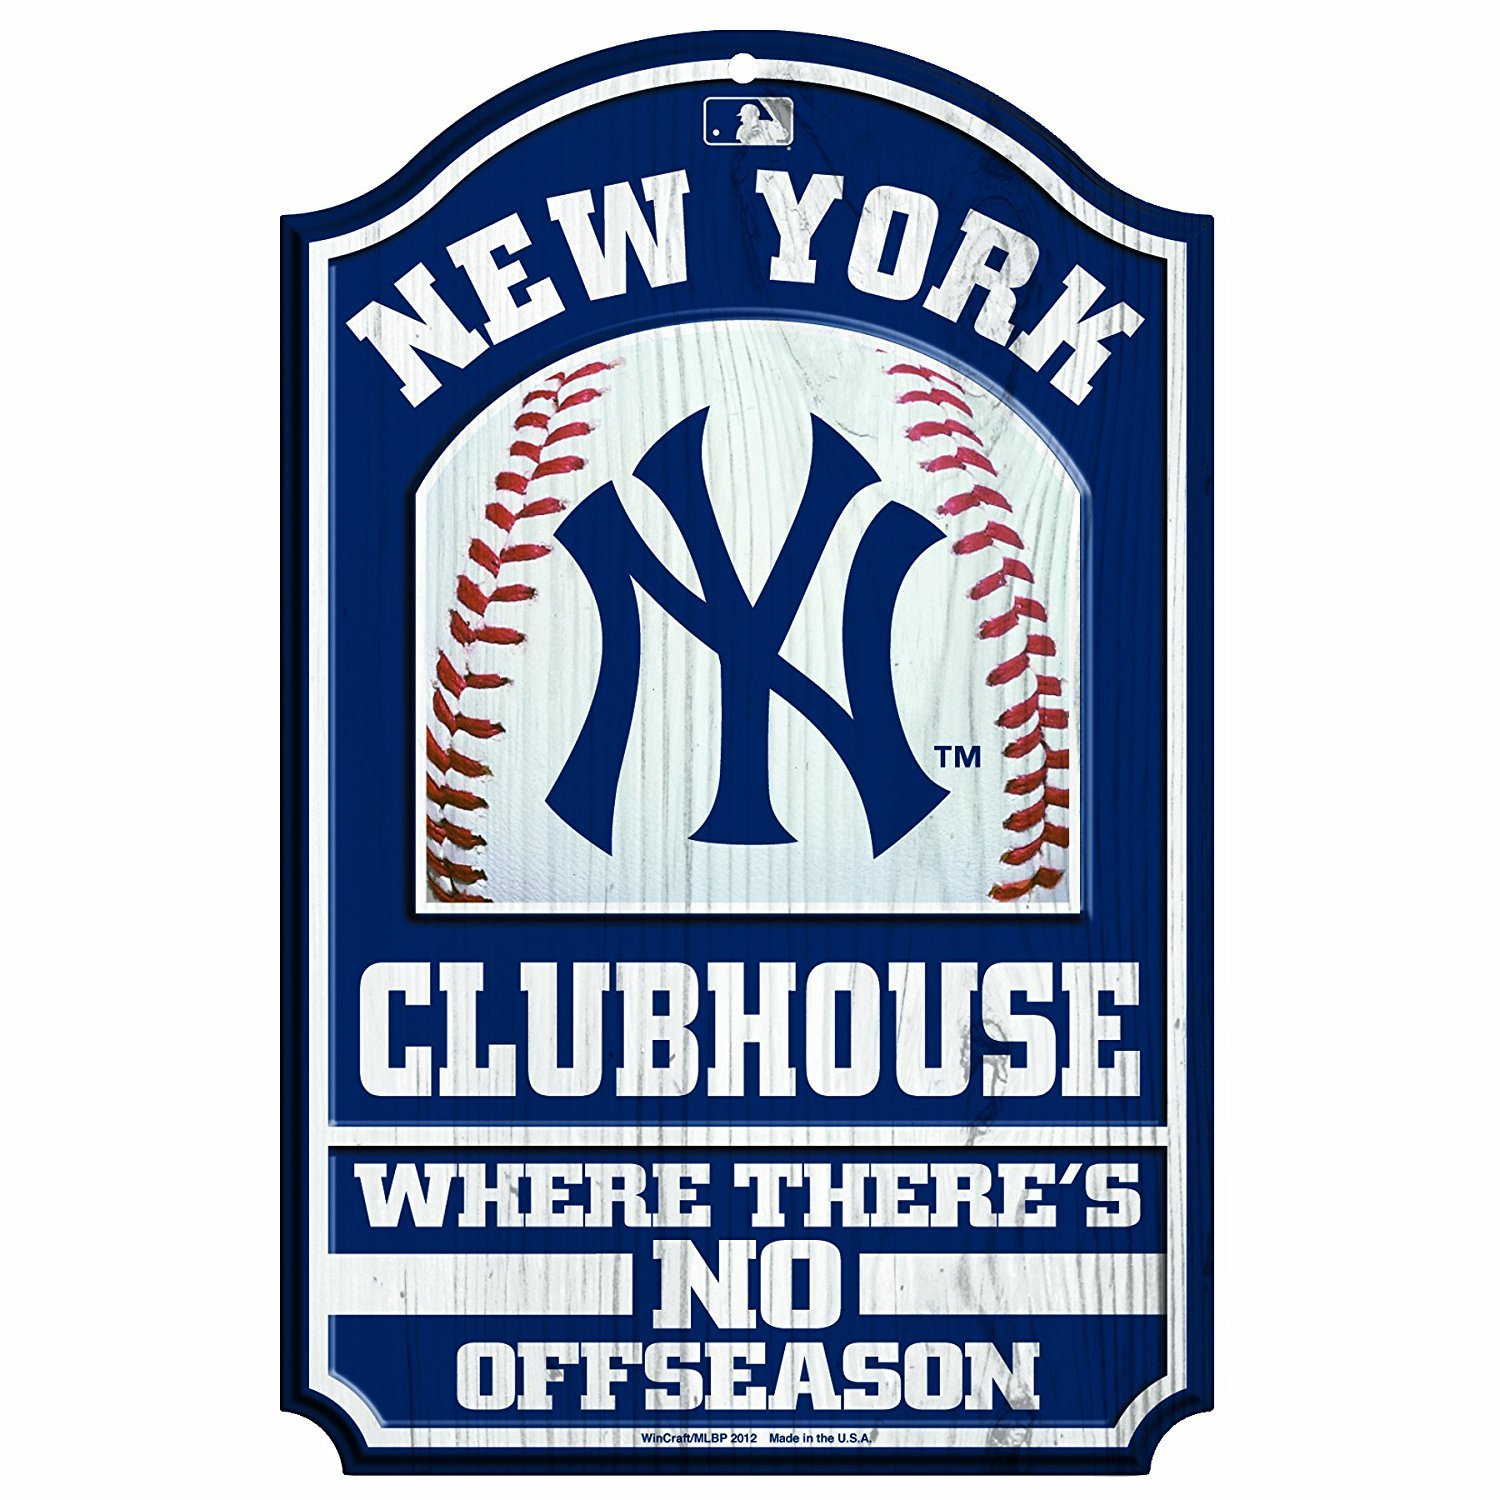 The New York Yankees Hardboard Wood Signs Are 1 4 Thick Decorated With Quality Graphics To Resemble An New York Yankees New York Yankees Baseball Yankees Fan